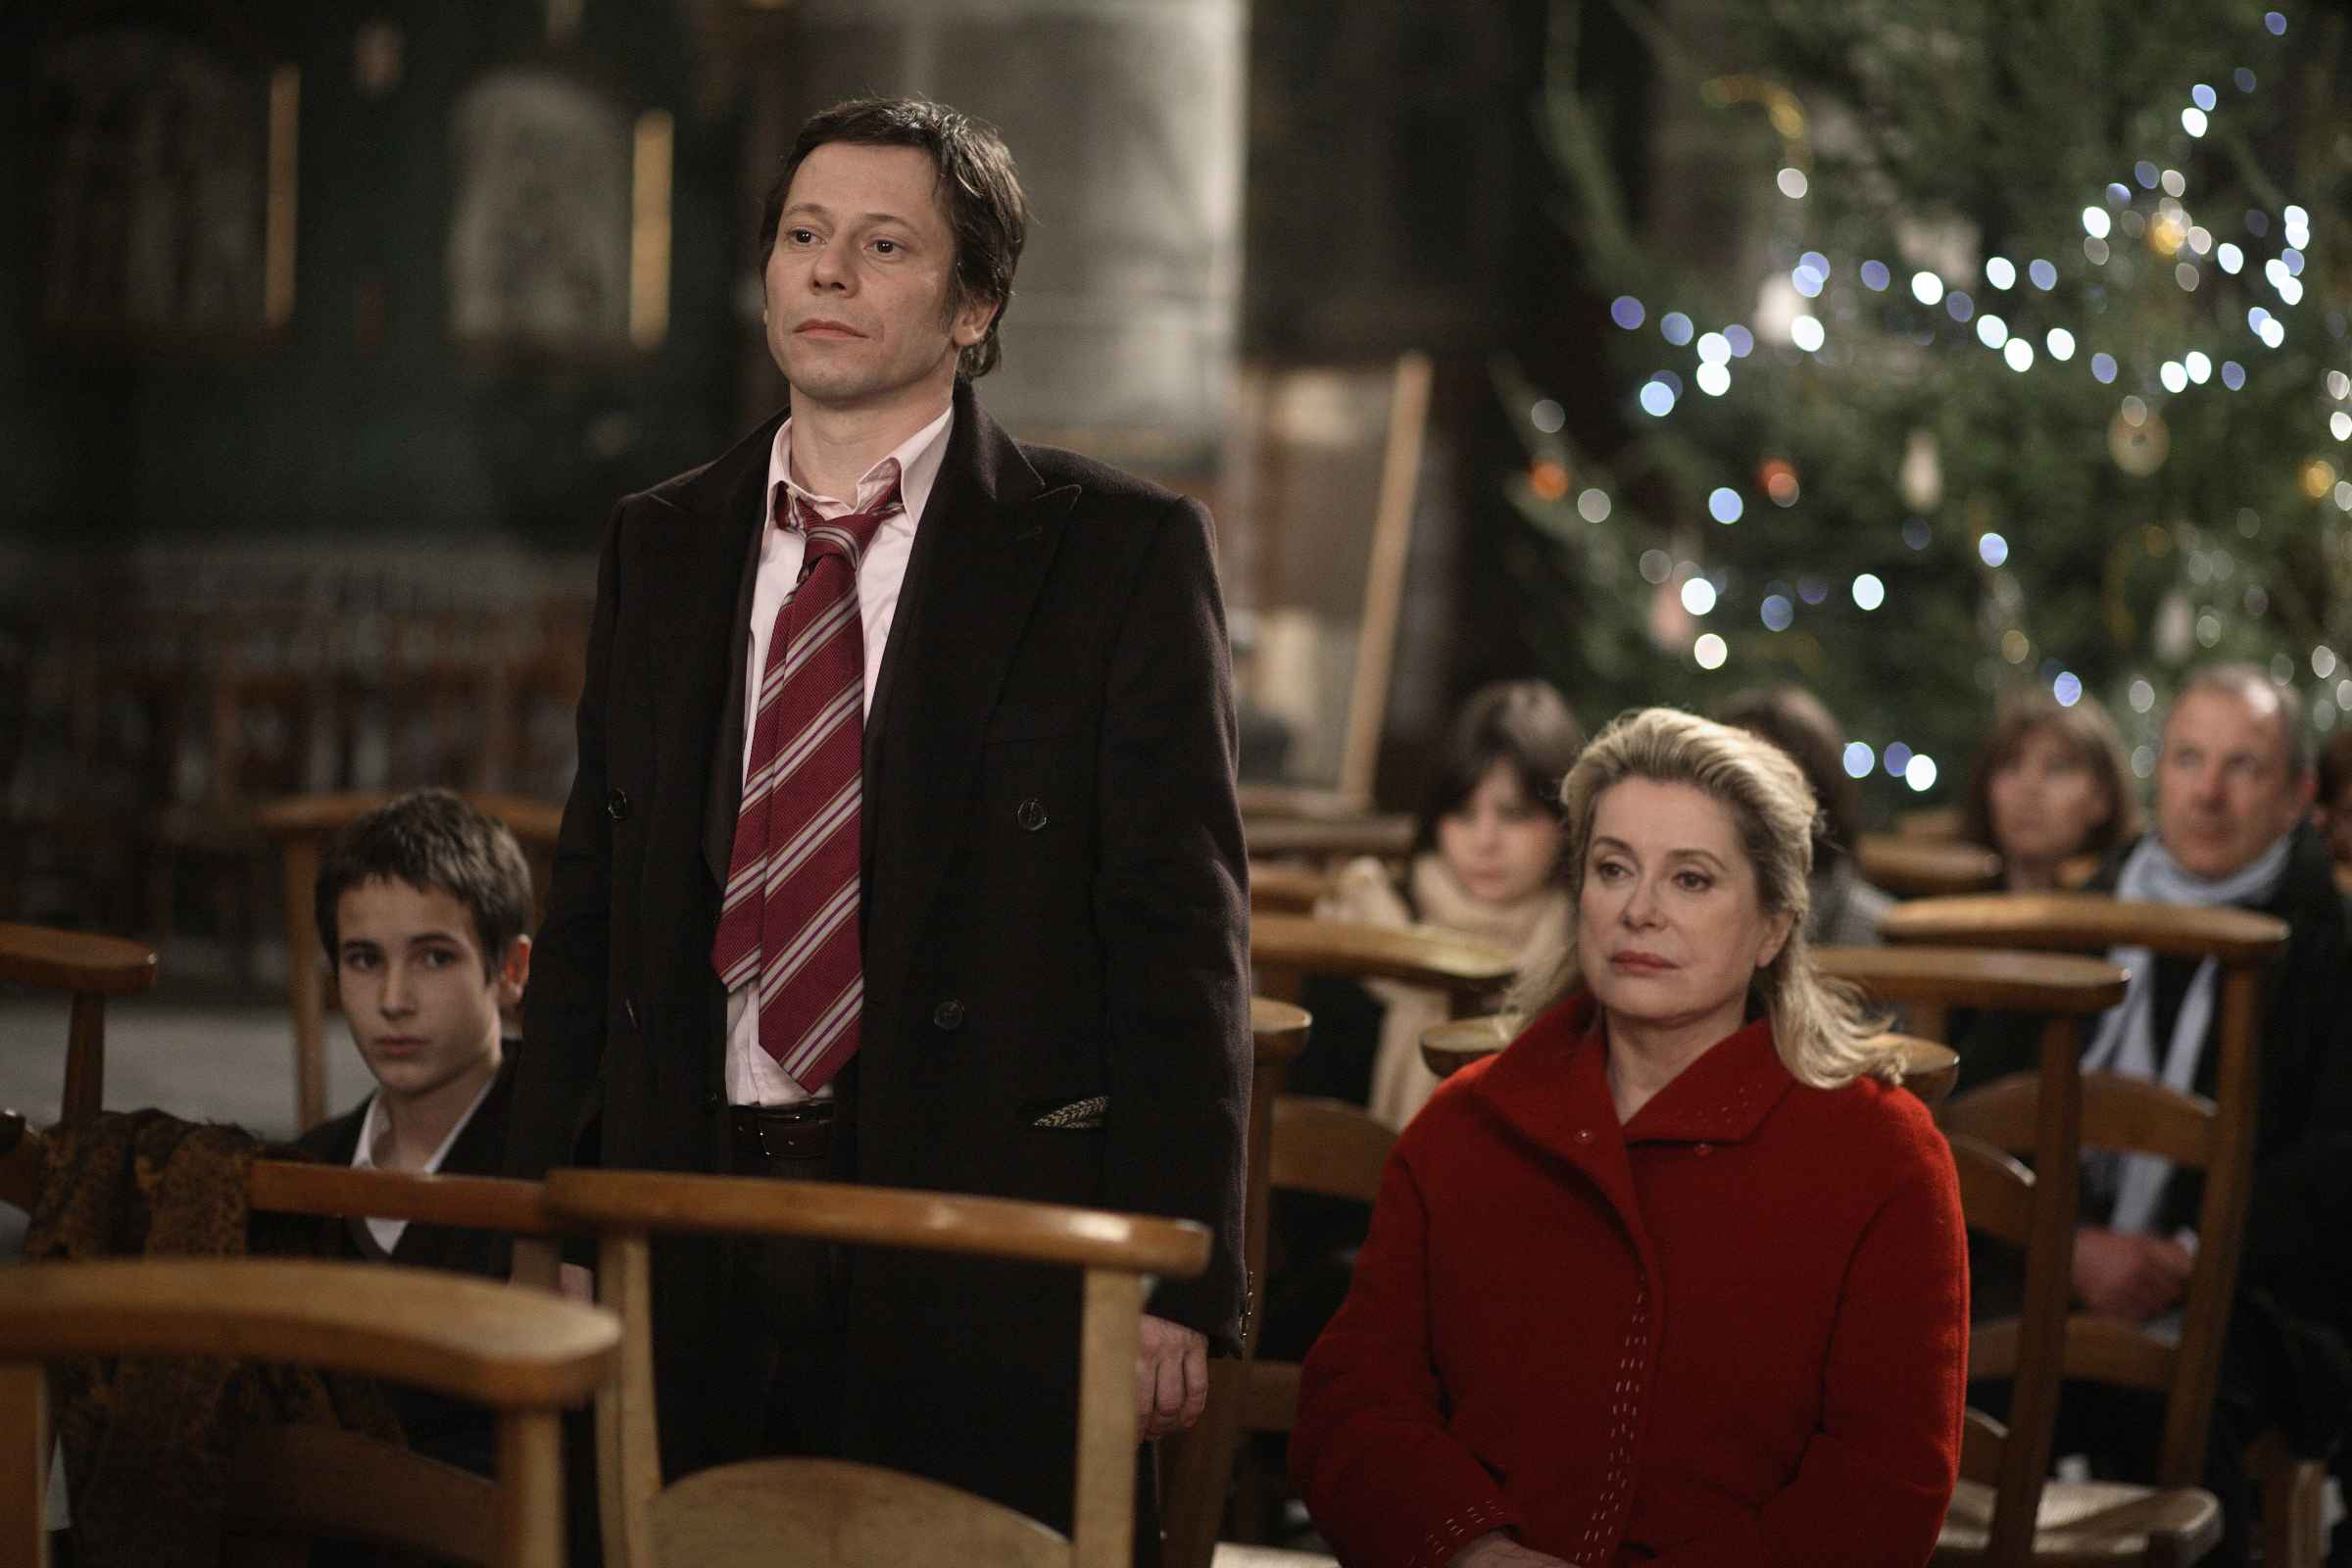 Mathieu Amalric and Catherine Deneuve in A Christmas Tale